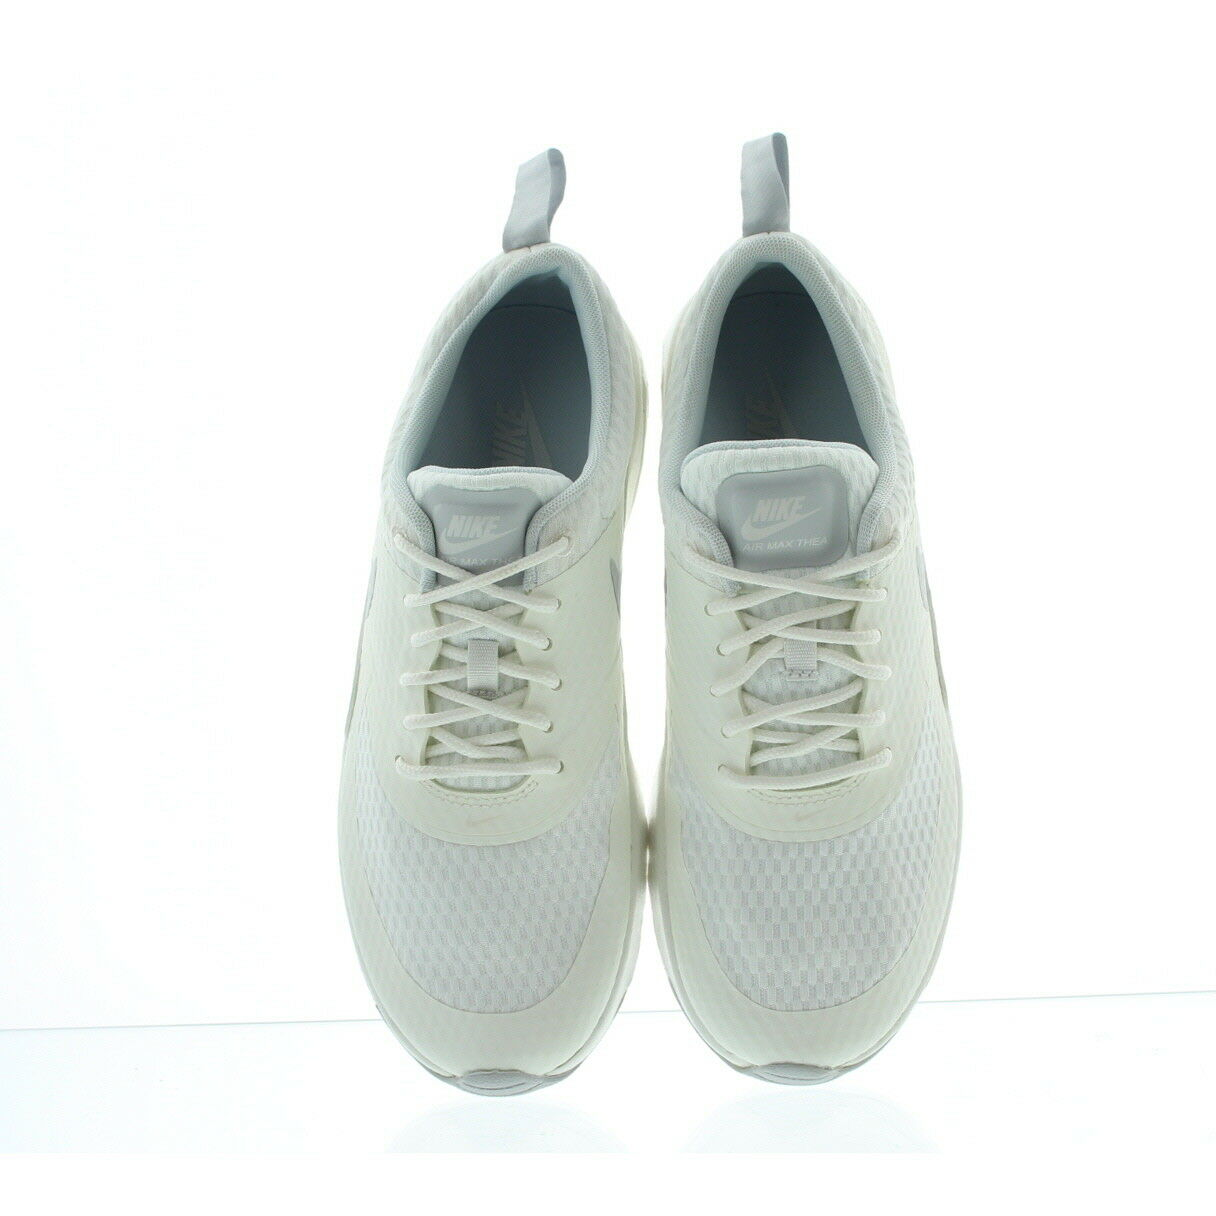 Nike 819639 Mens Air Max Thea TXT Low Top Running Shoes Sneakers